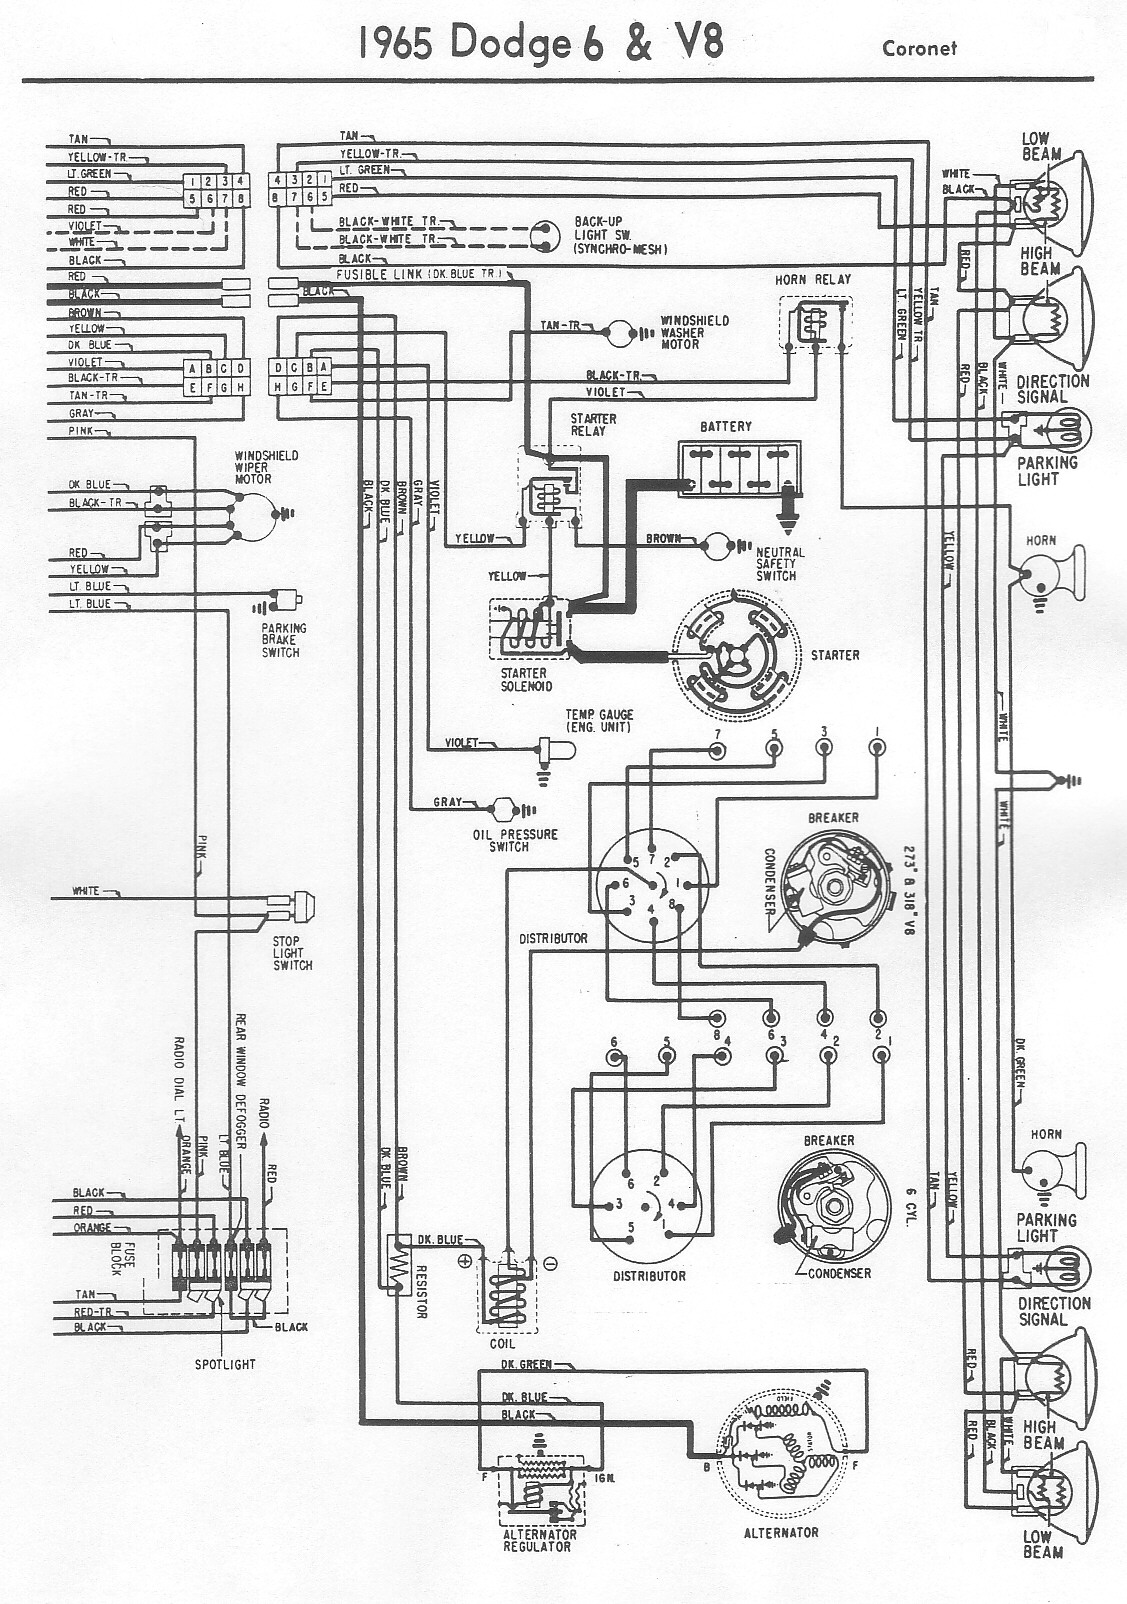 1965 wiring diagram vintage dodge coronet2 bzerob com technical articles library wiring section mymopar wiring diagram at eliteediting.co